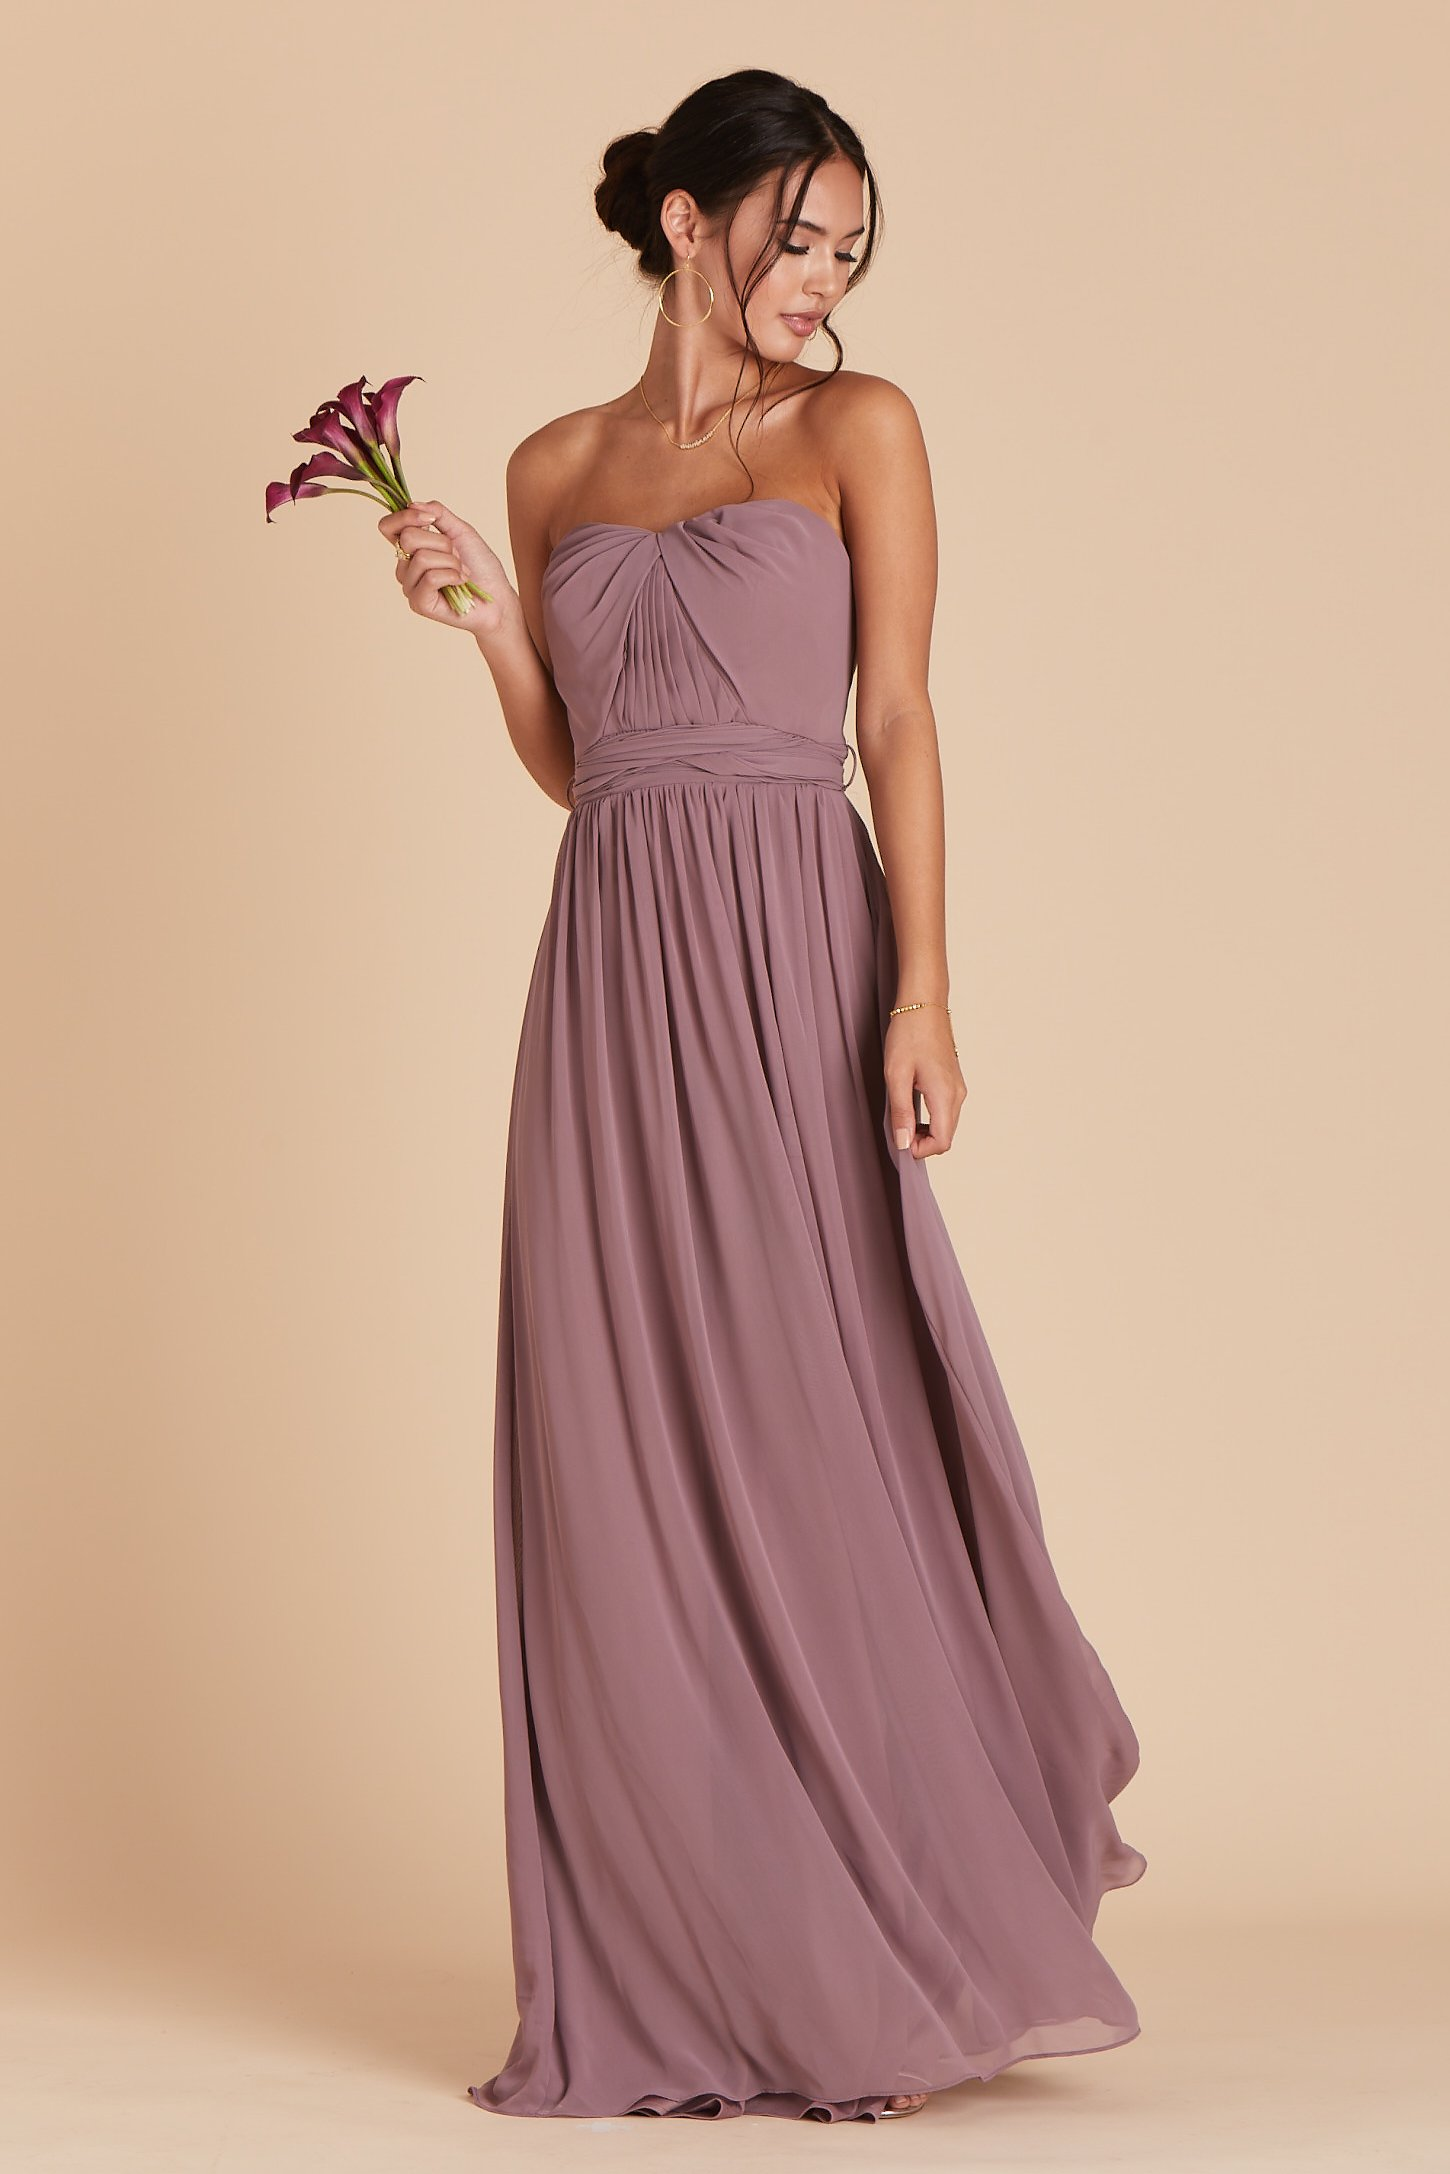 Grace Convertible Dress - Dark Mauve in 20